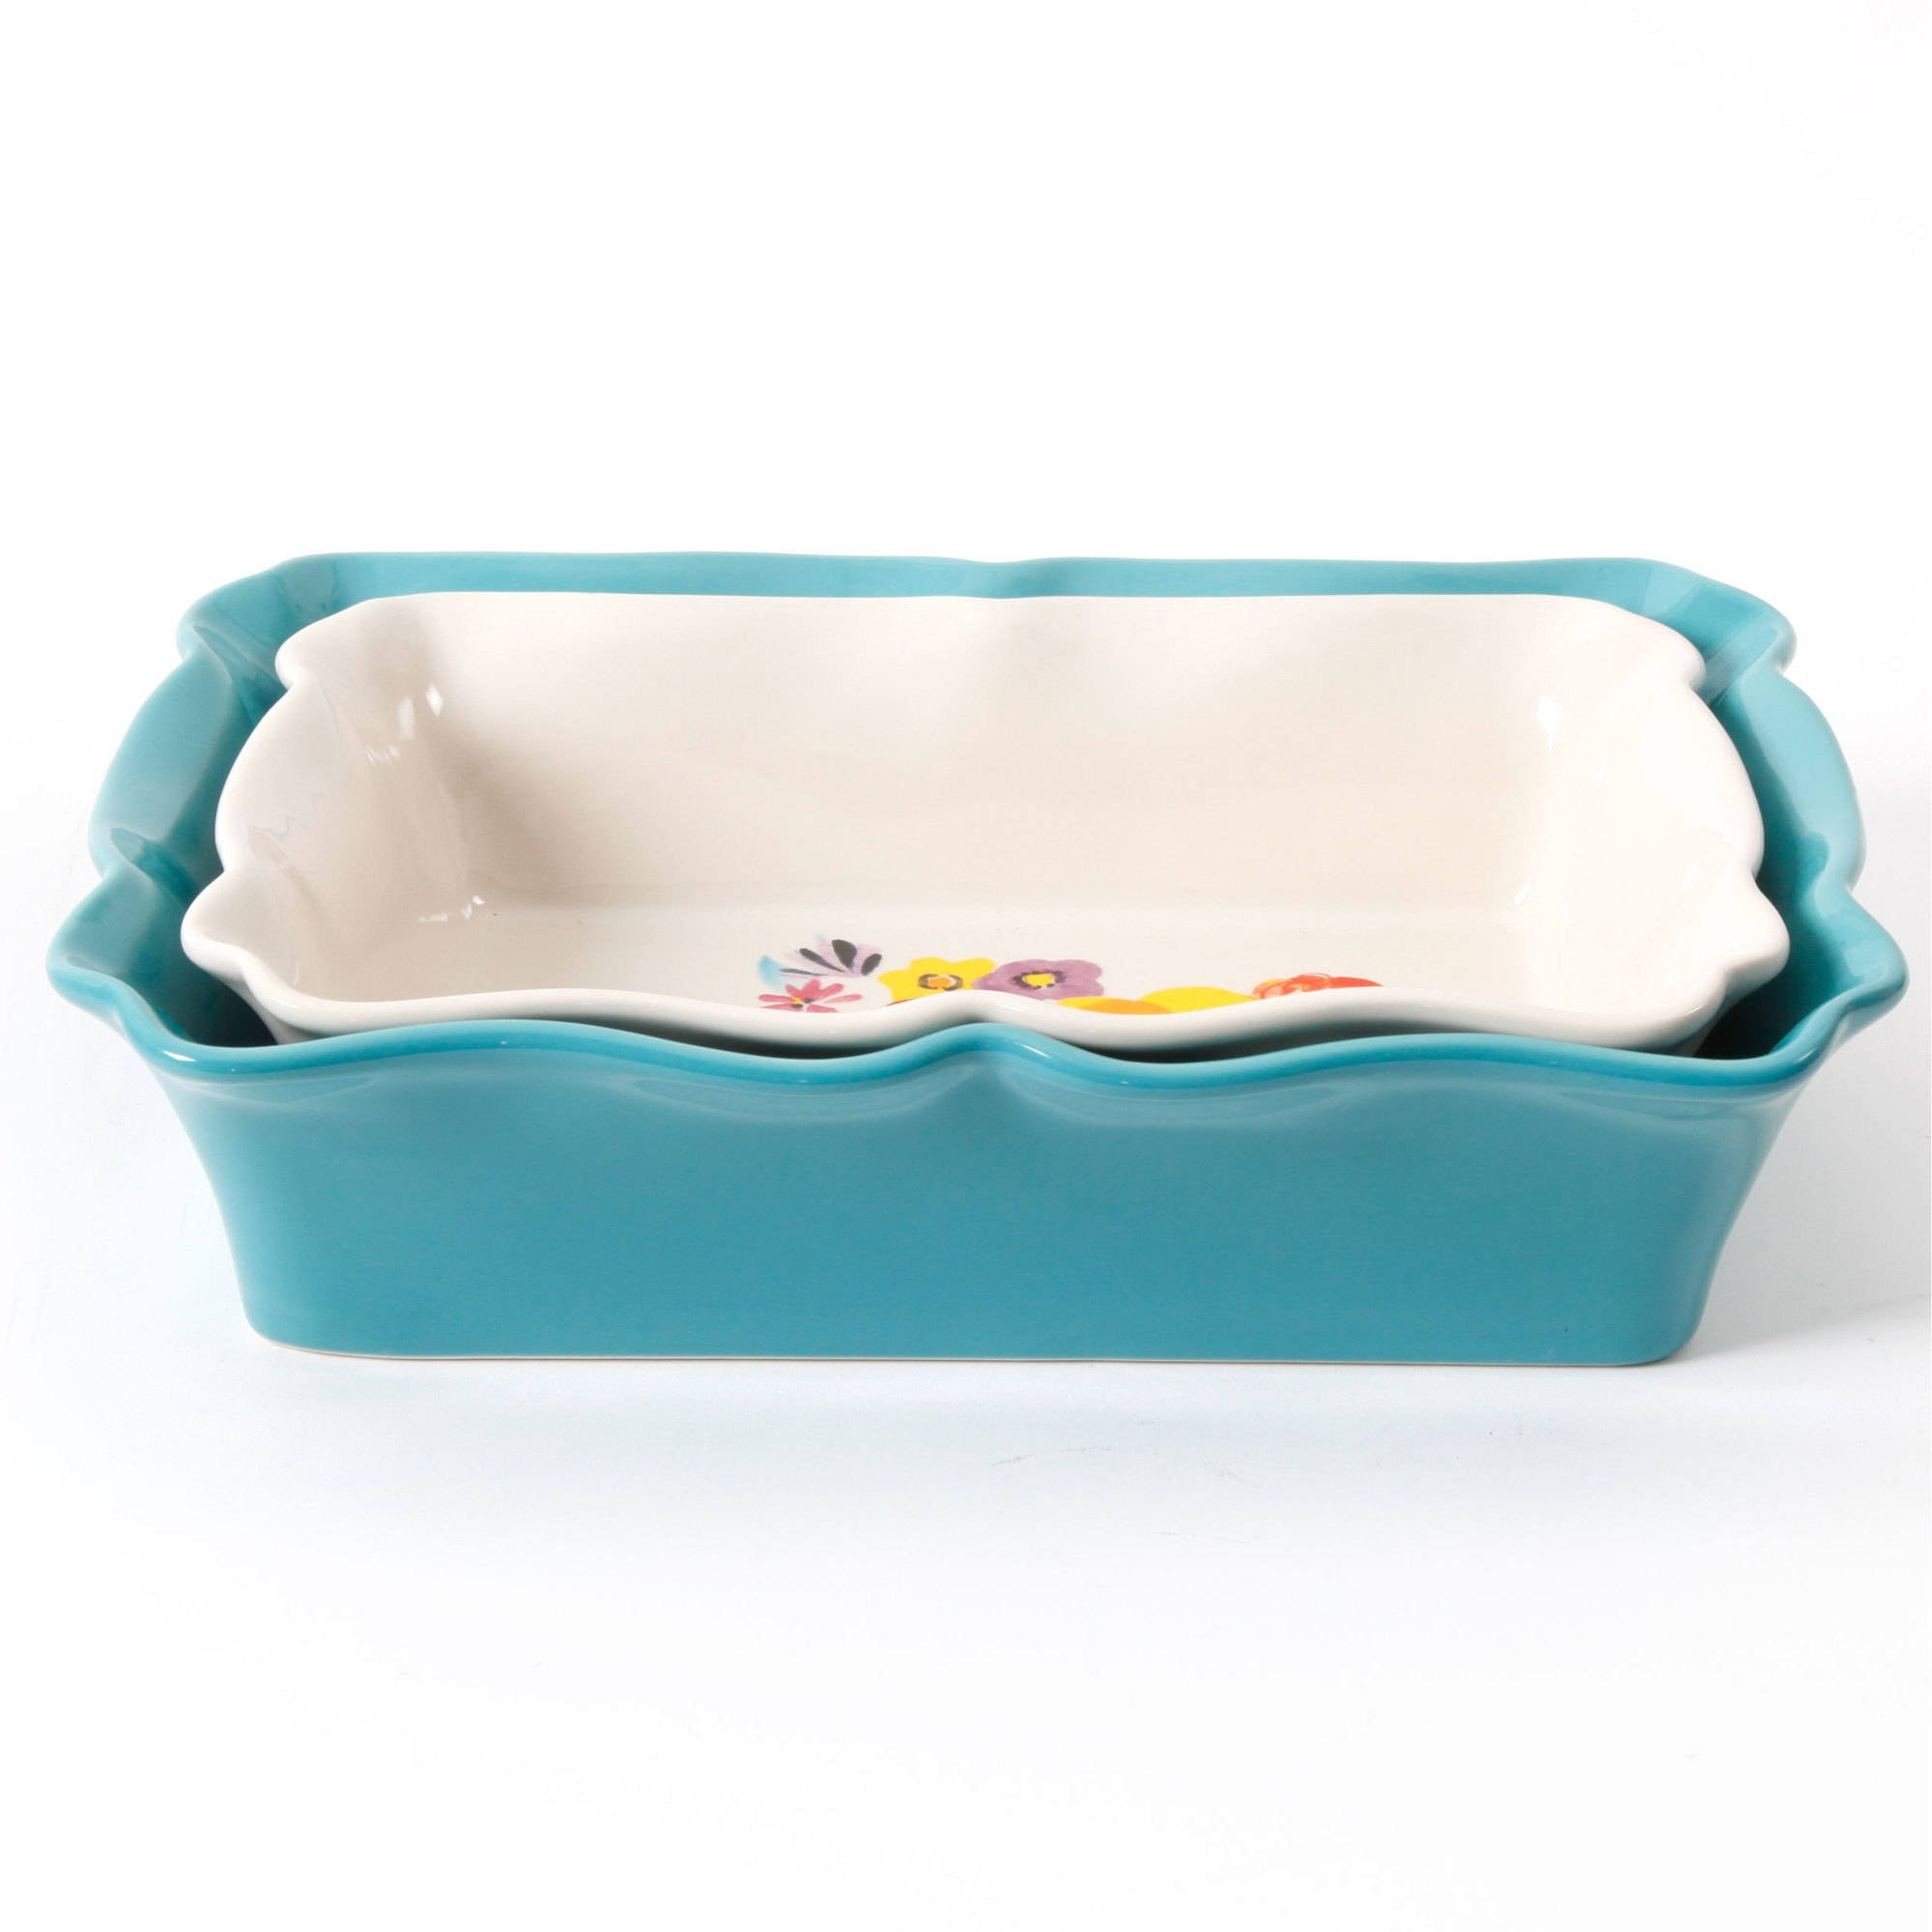 The Pioneer Woman 3.3 Quart Dazzling Dahlias Batter Bowl, 1-Piece bundle with The Pioneer Woman 2-Piece Rectangular Ruffle Top Ceramic Bakeware Set'' by The Pioneer Woman (Image #3)